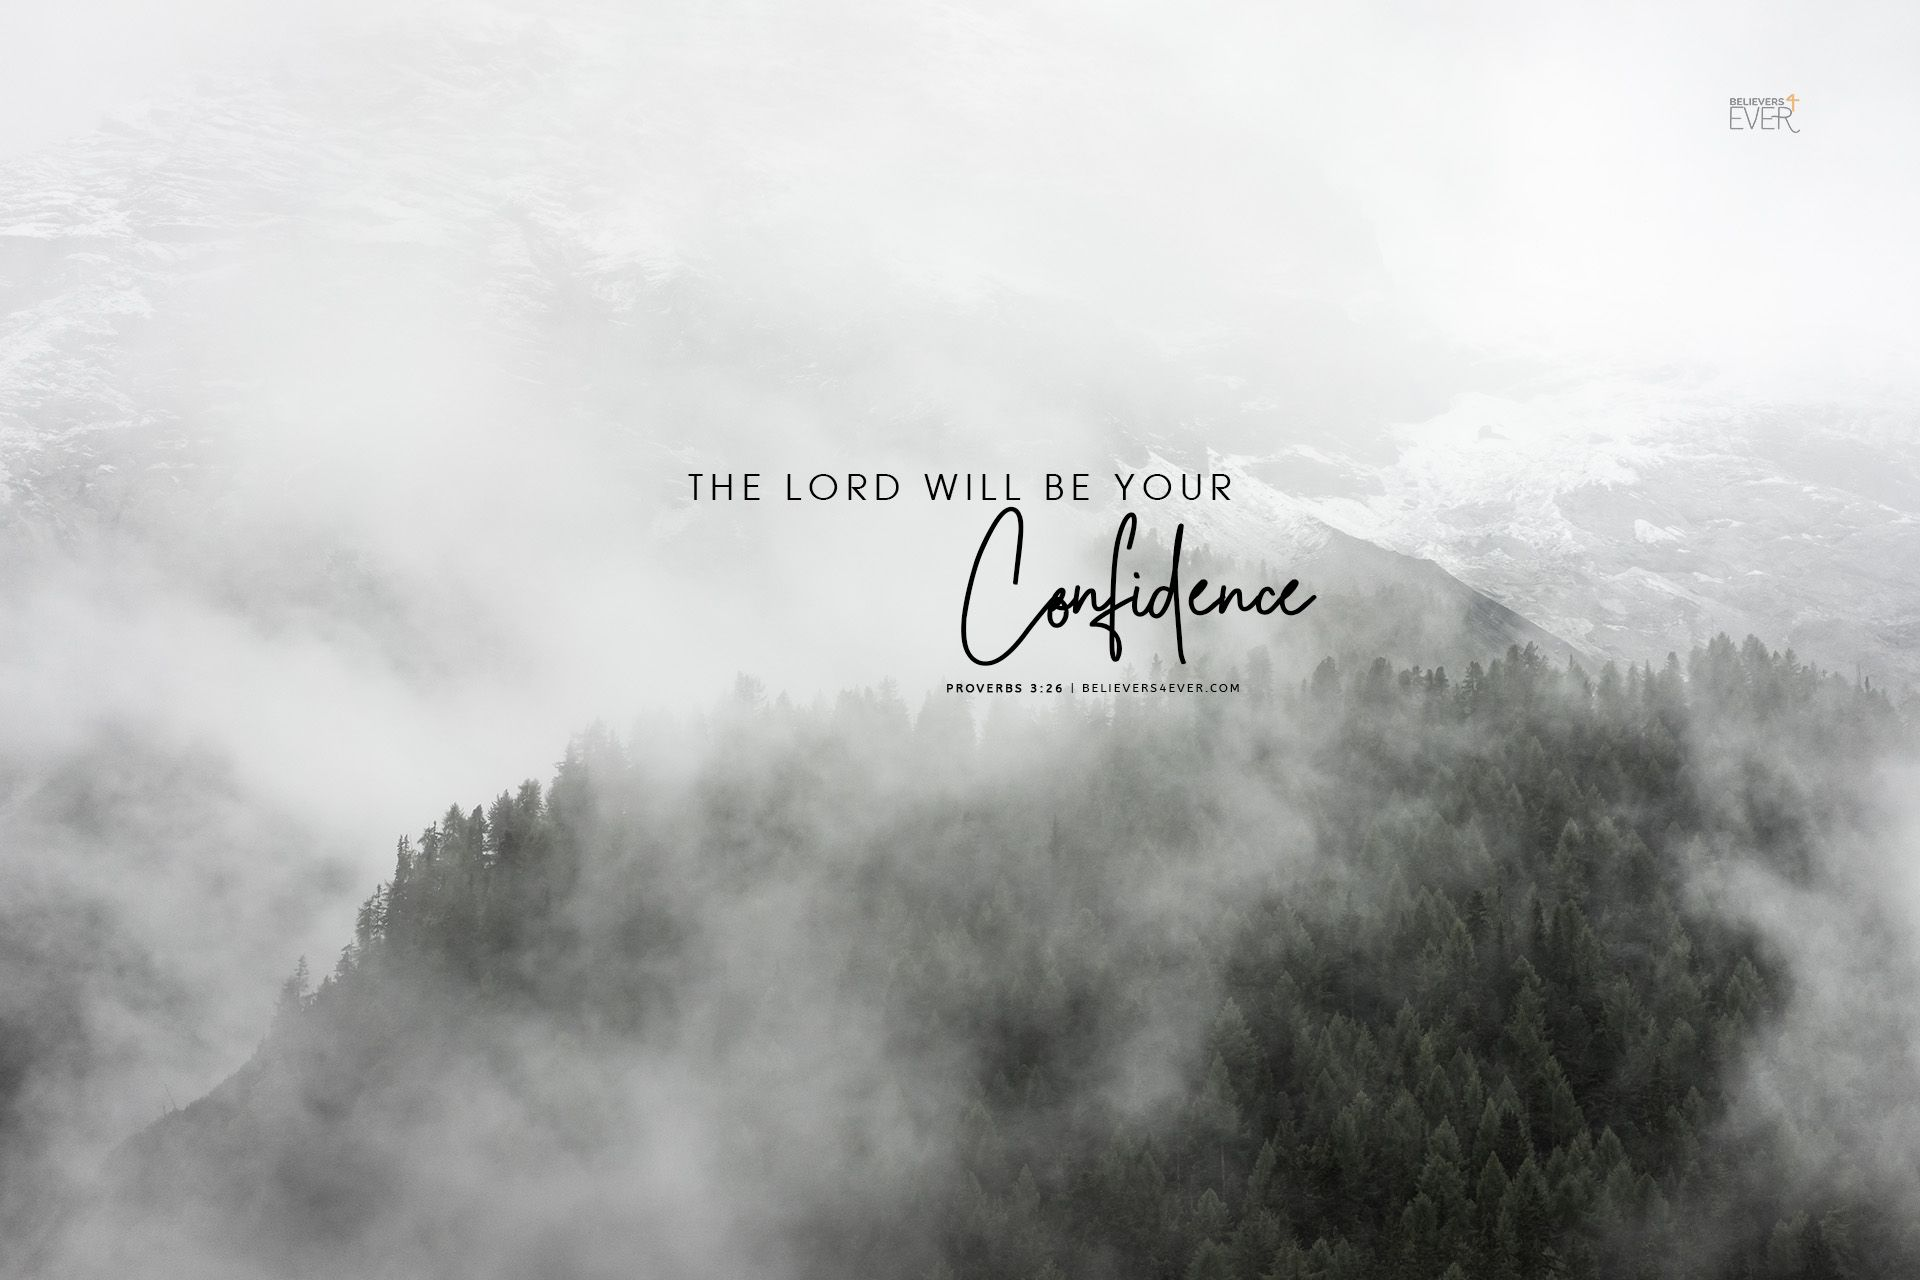 The Lord Will Be Your Confidence Believers4ever Com Bible Verse Desktop Wallpaper Bible Quotes Wallpaper Wallpaper Bible